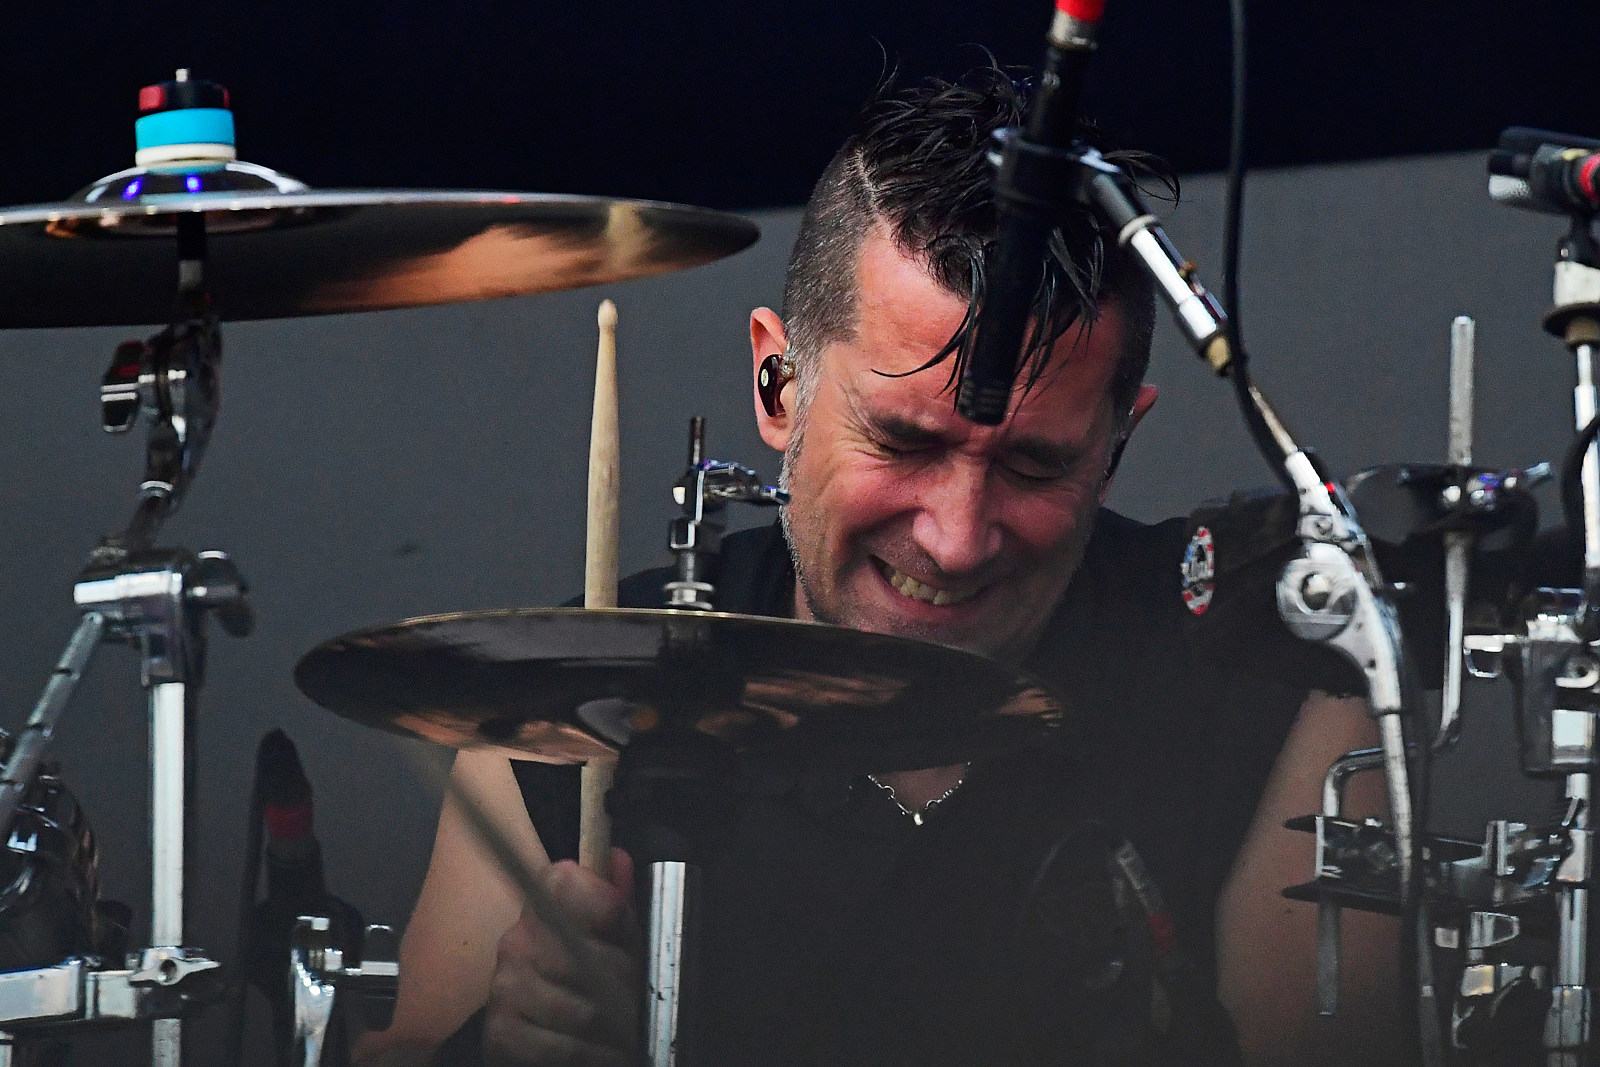 Offspring Drummer Claims He Was Dismissed for Being Unvaccinated